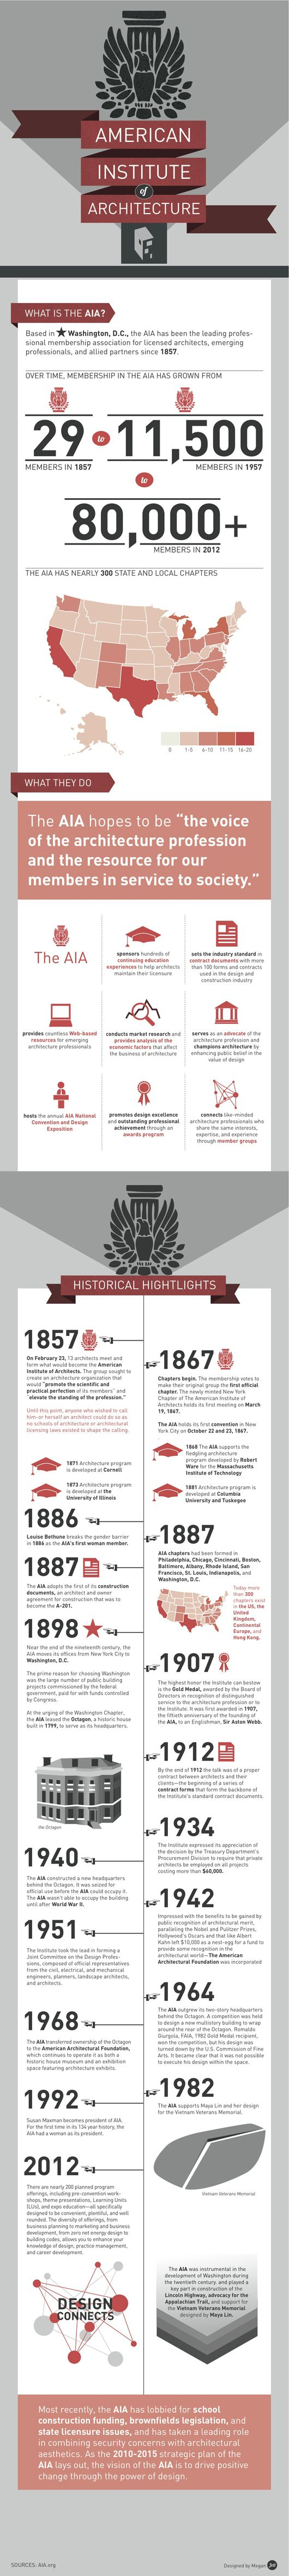 Infographic The AIA History